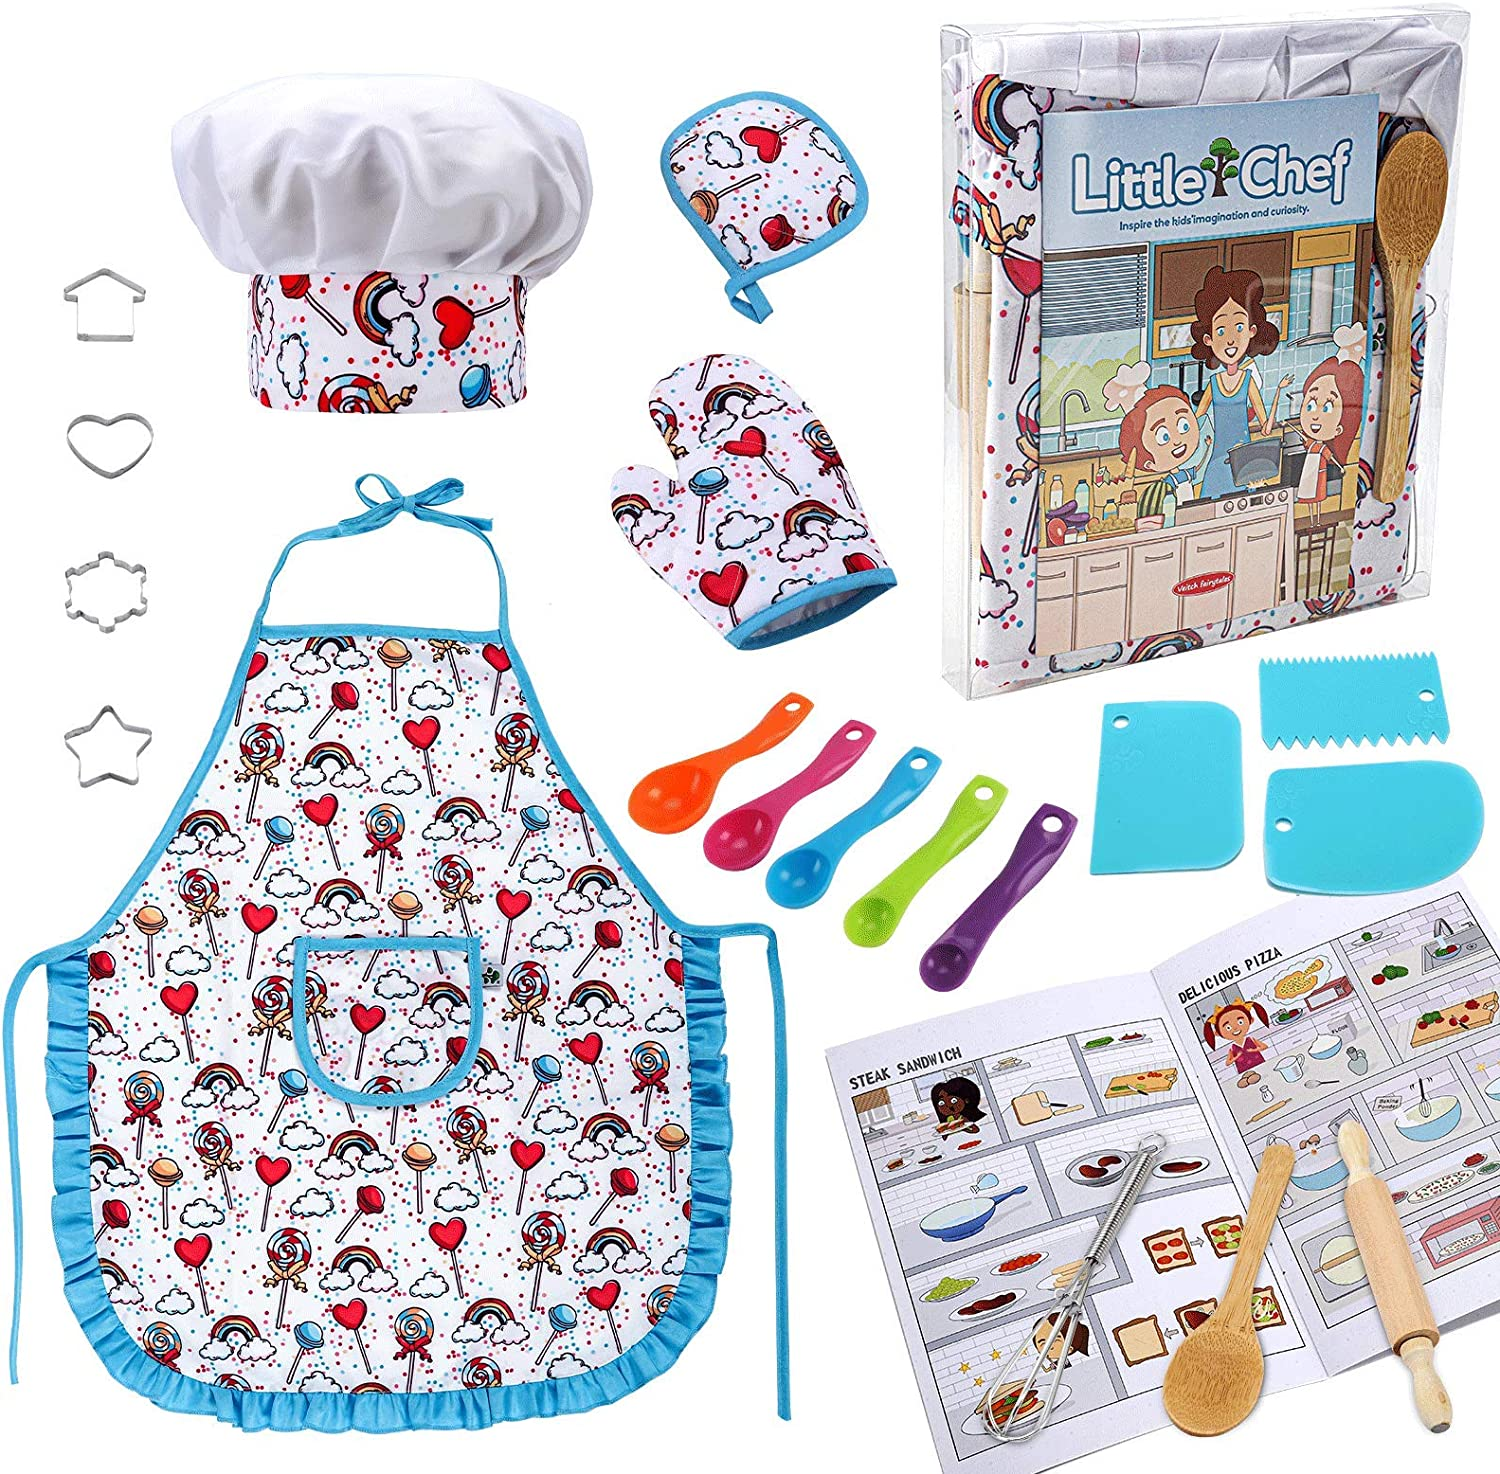 Kids Cooking and Baking Set 20Pcs, Kids Chef Hat and Apron for Children Toddler Girl Birthday Gift for 3 4 5 6 7 8 Year Old Girls Toys